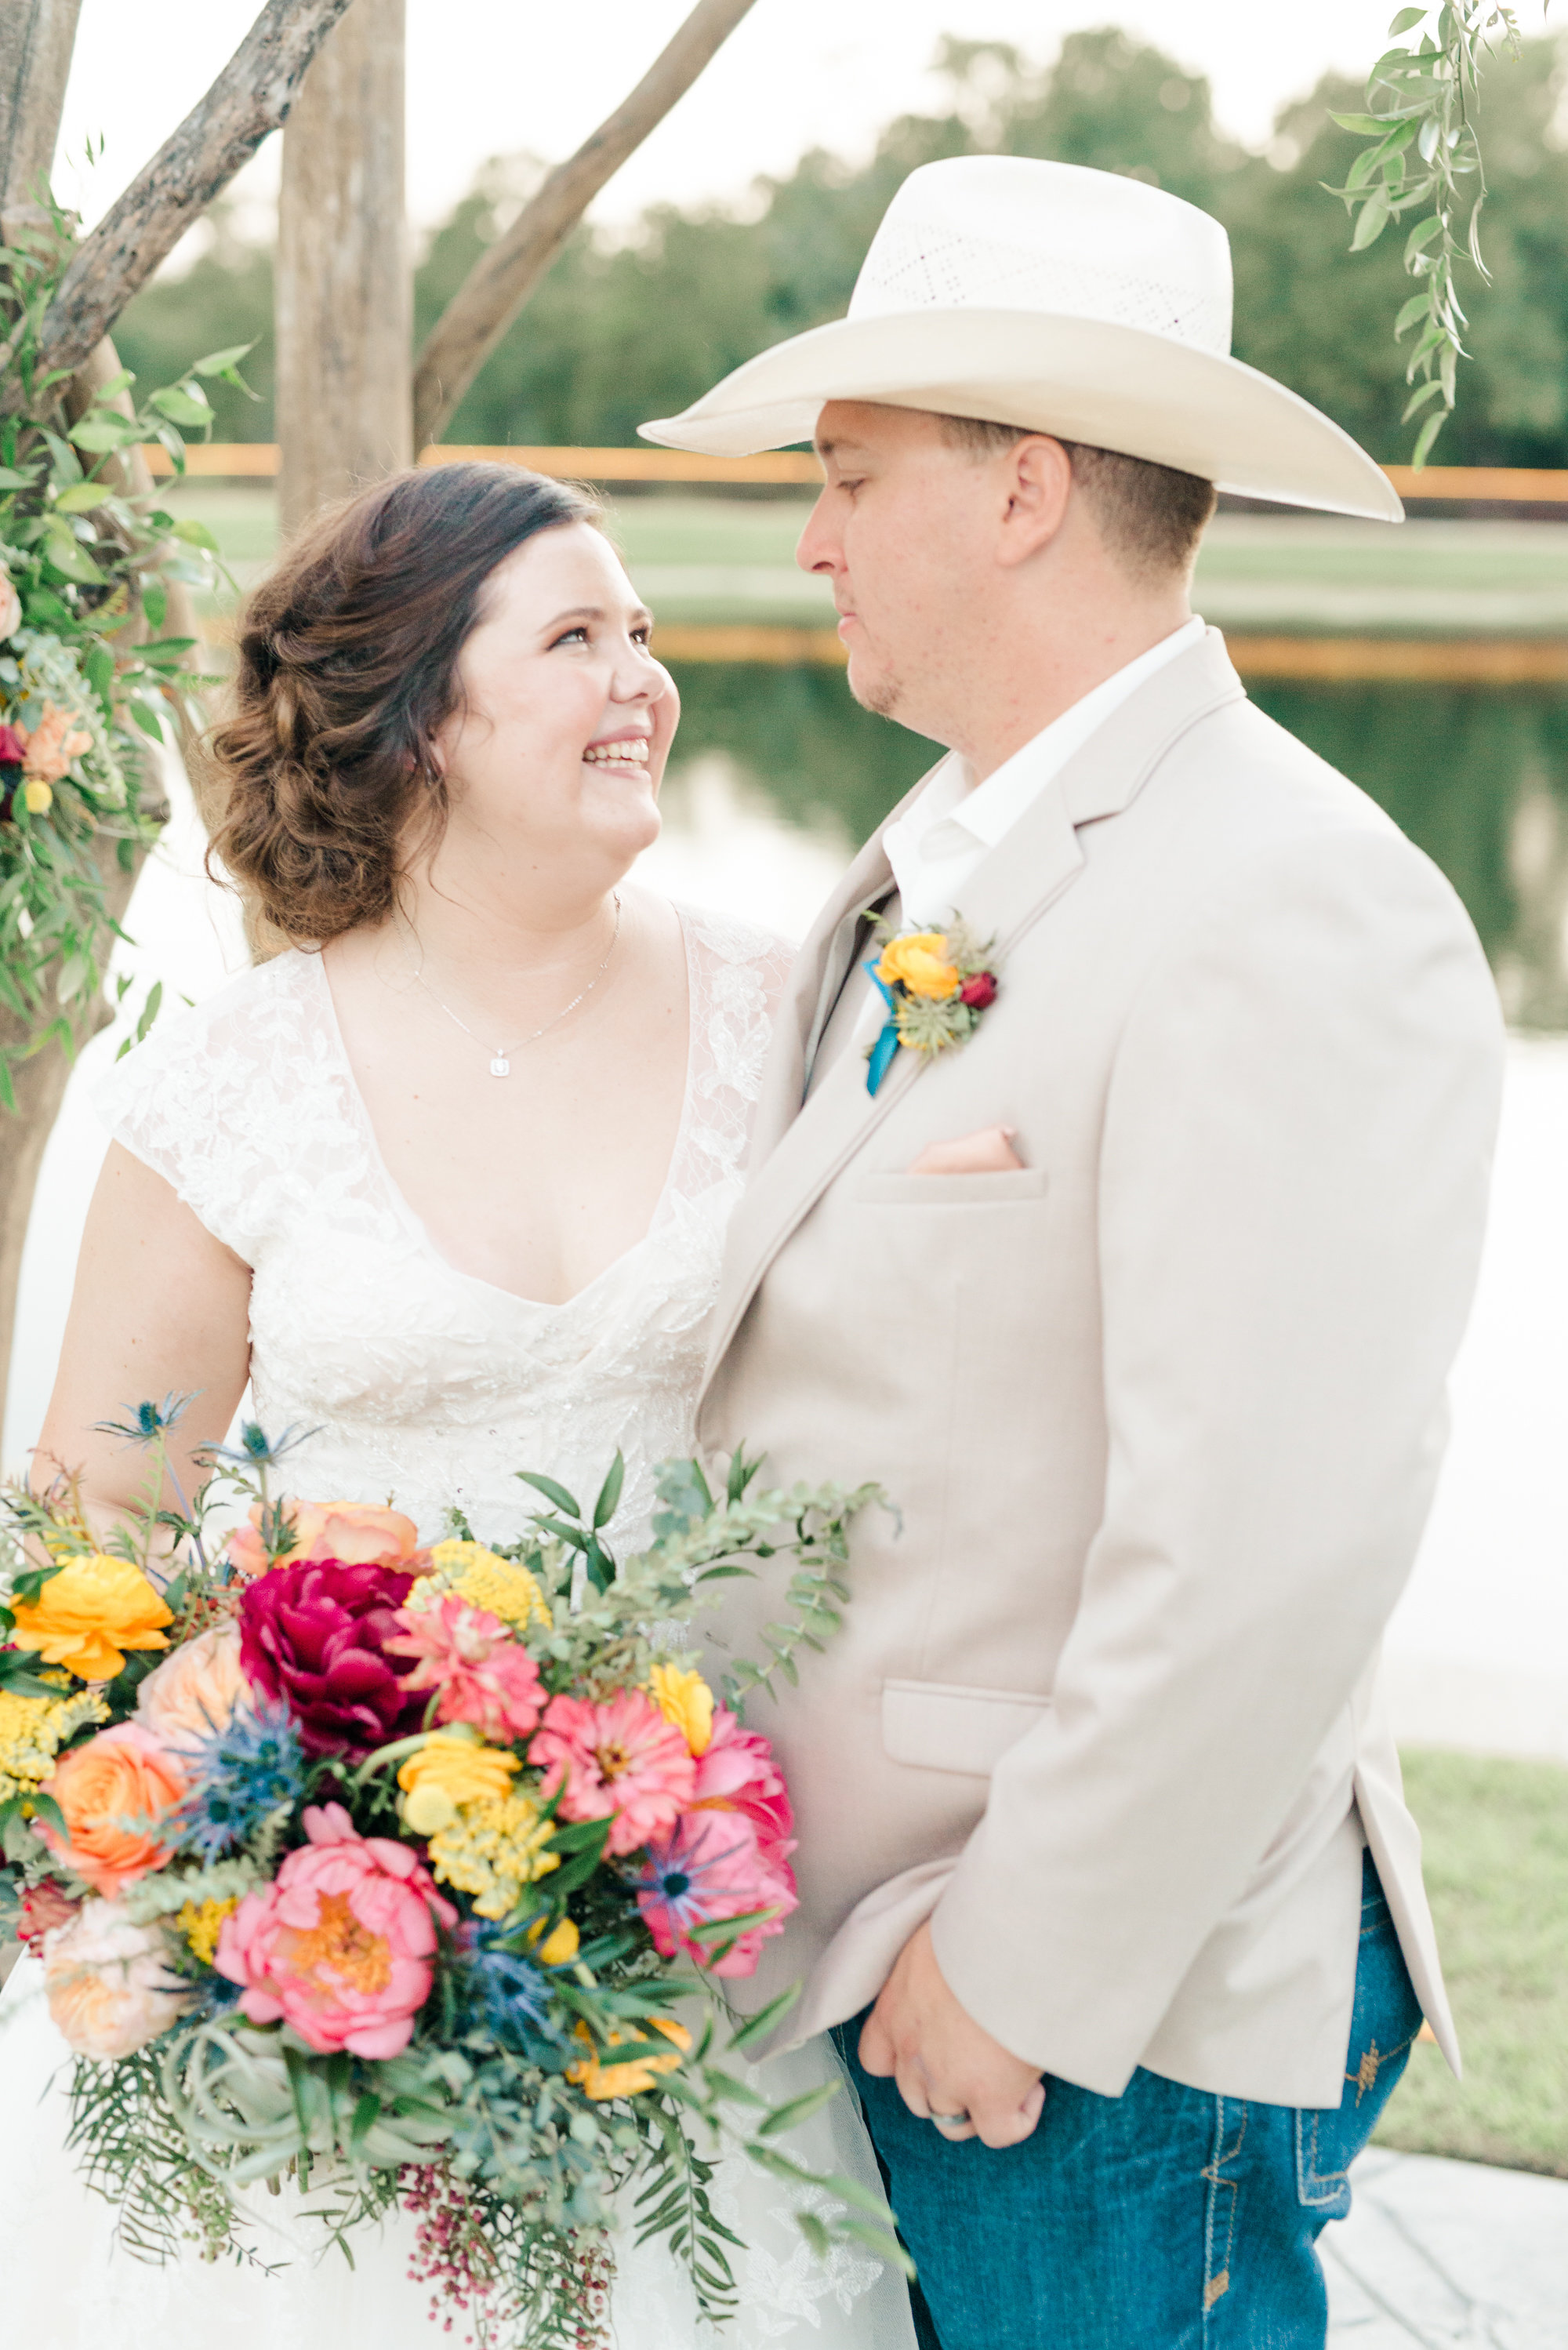 Wesley-Wedding-Ten23-Photography-718